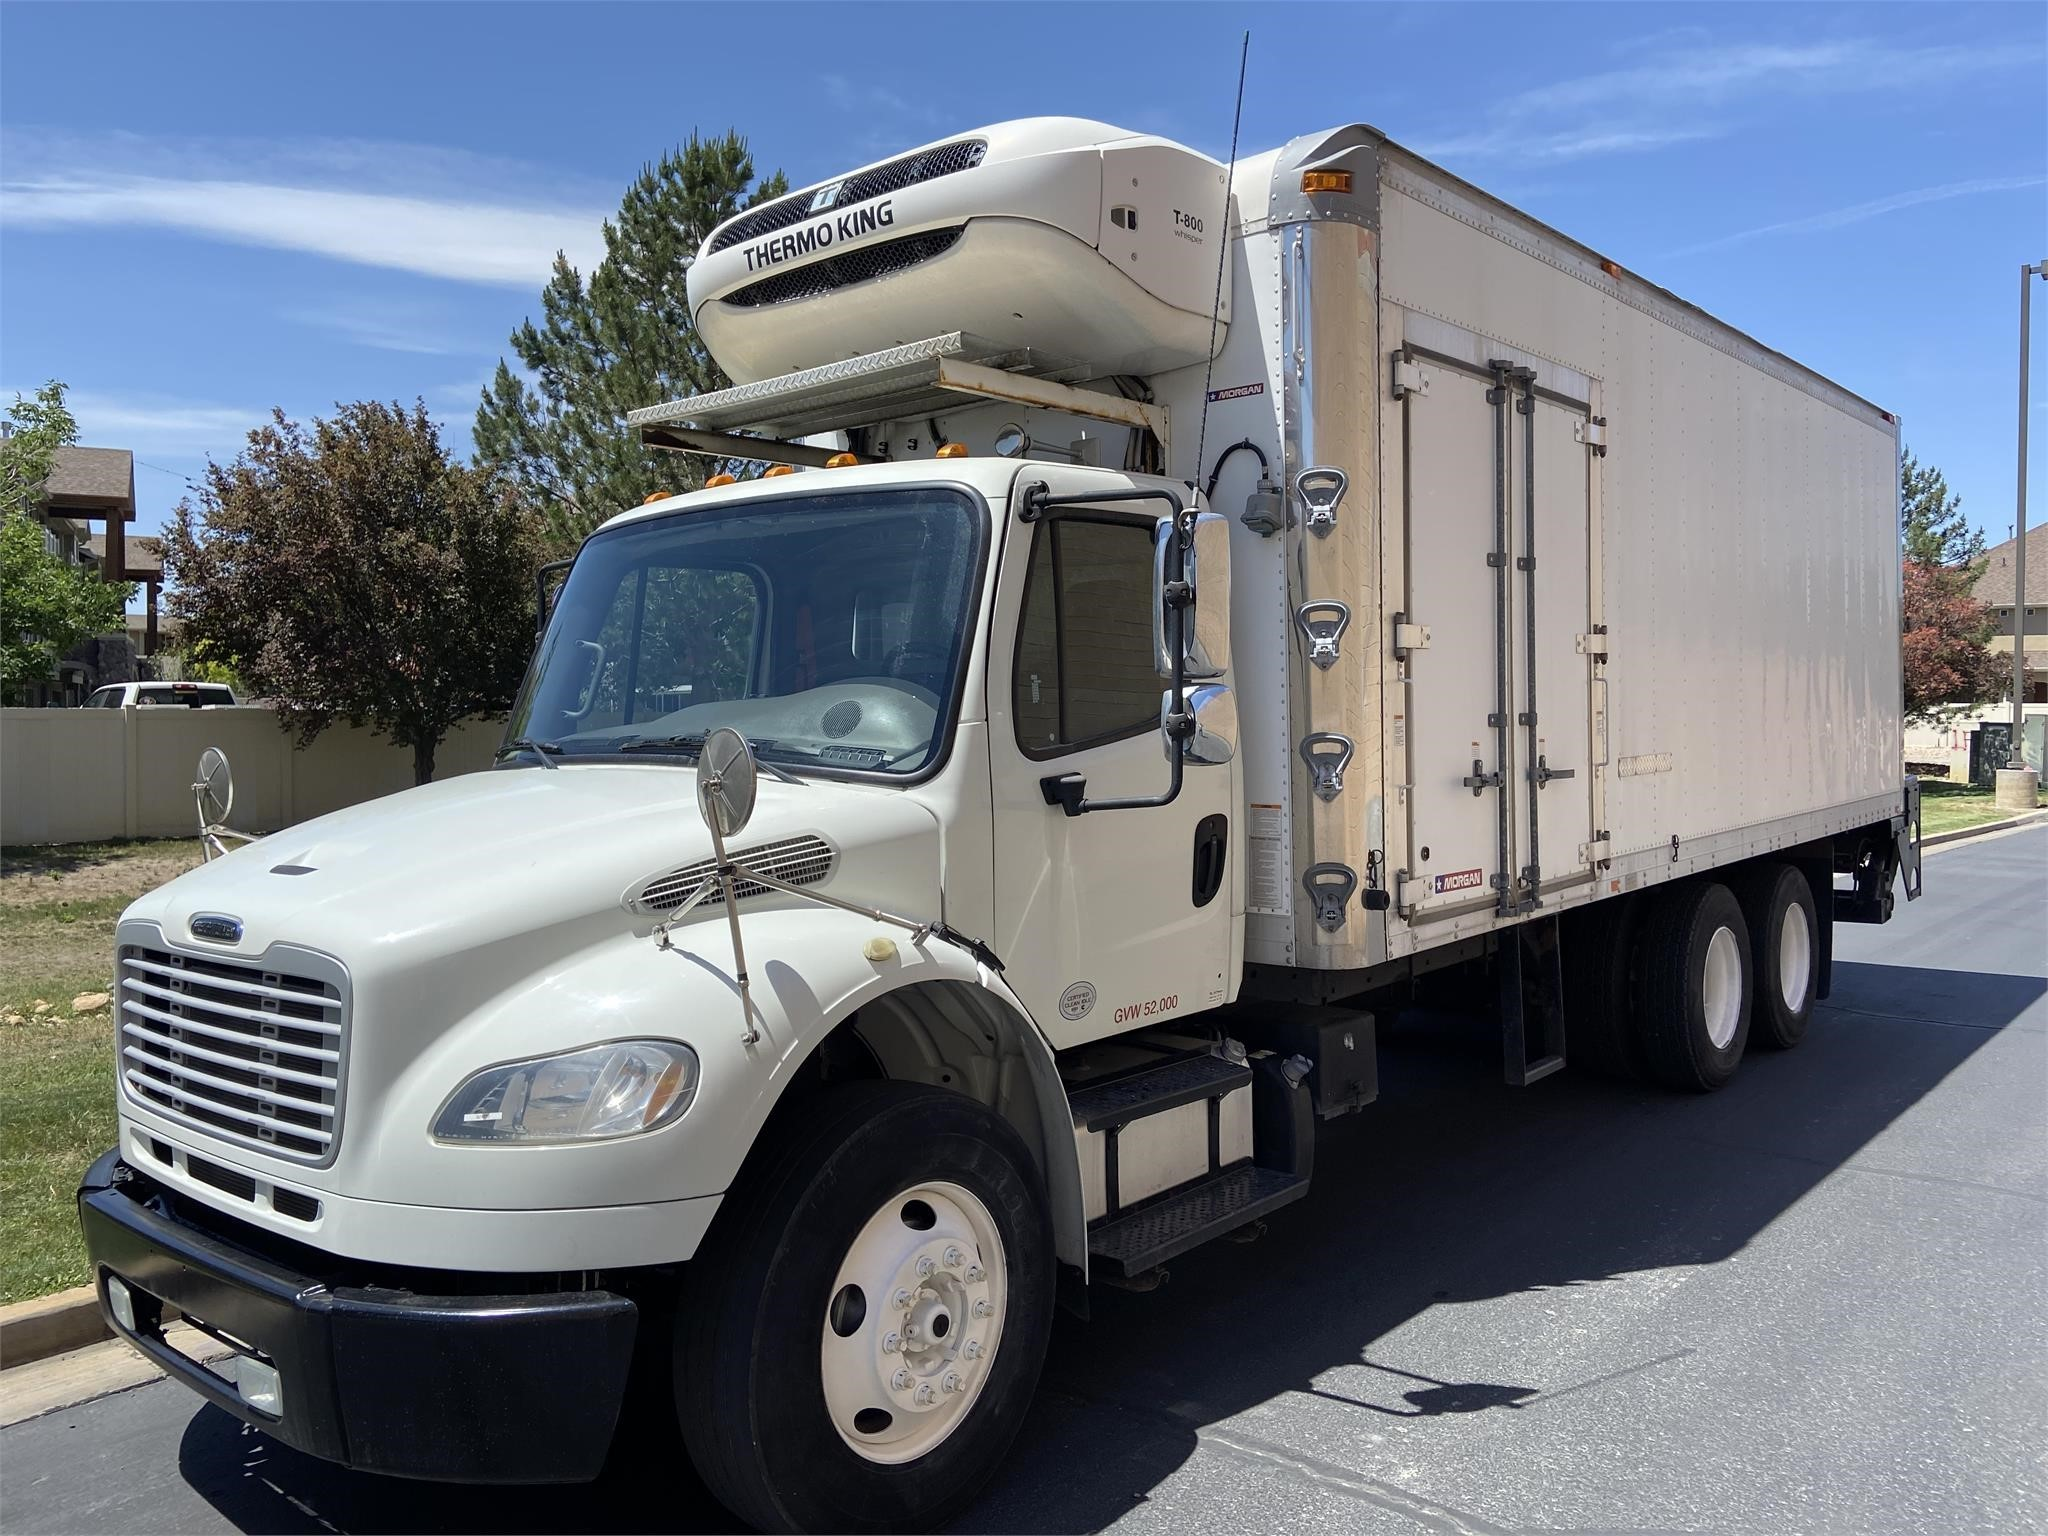 Used, 2014, FREIGHTLINER, BUSINESS CLASS M2 106, Reefer/Refrigerated Truck